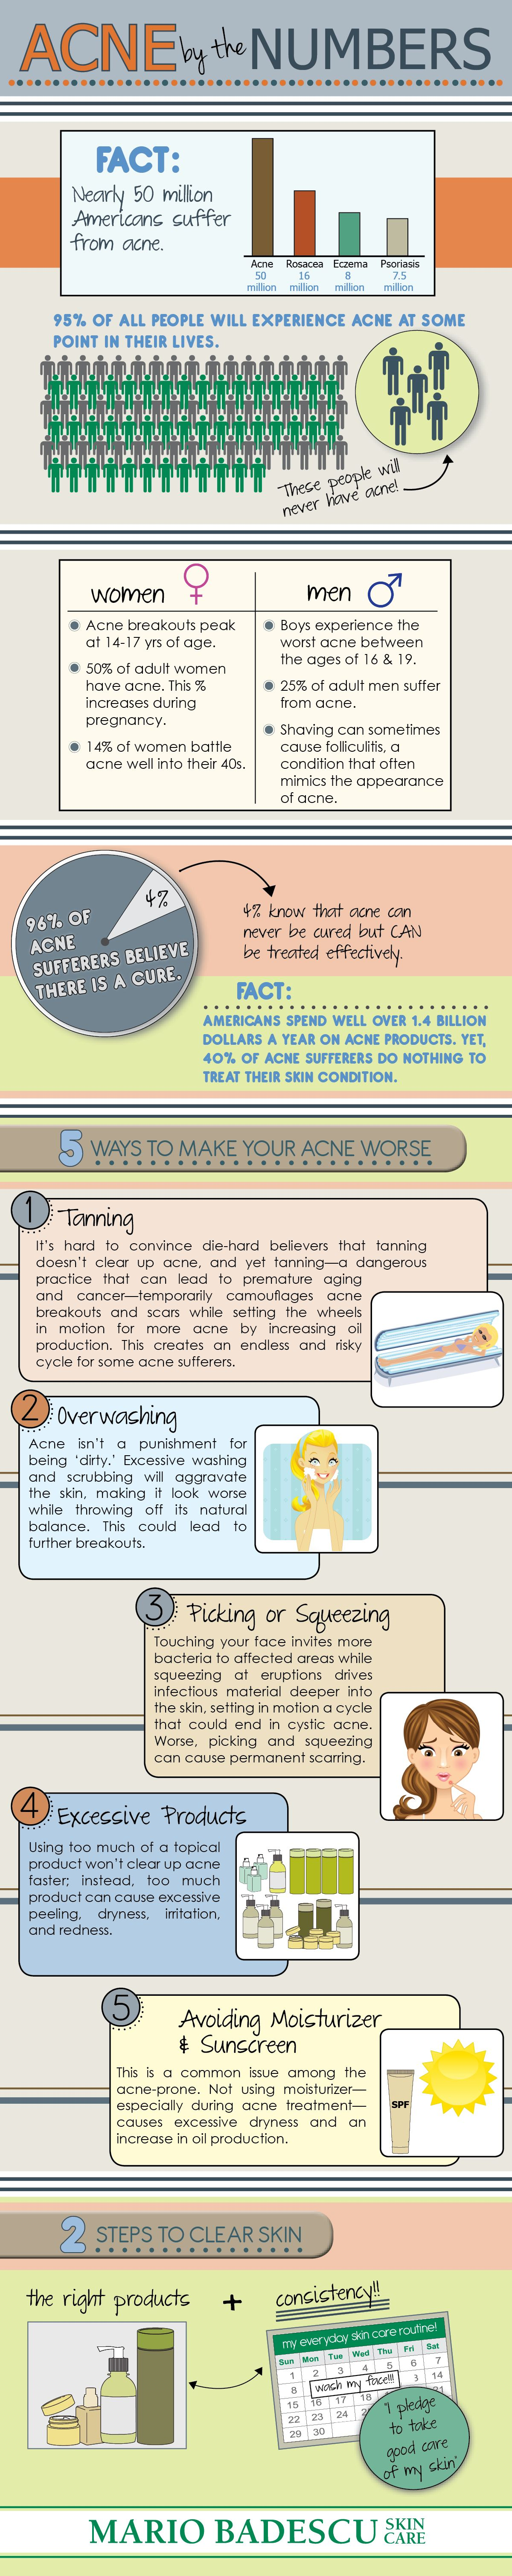 Facts about Acne